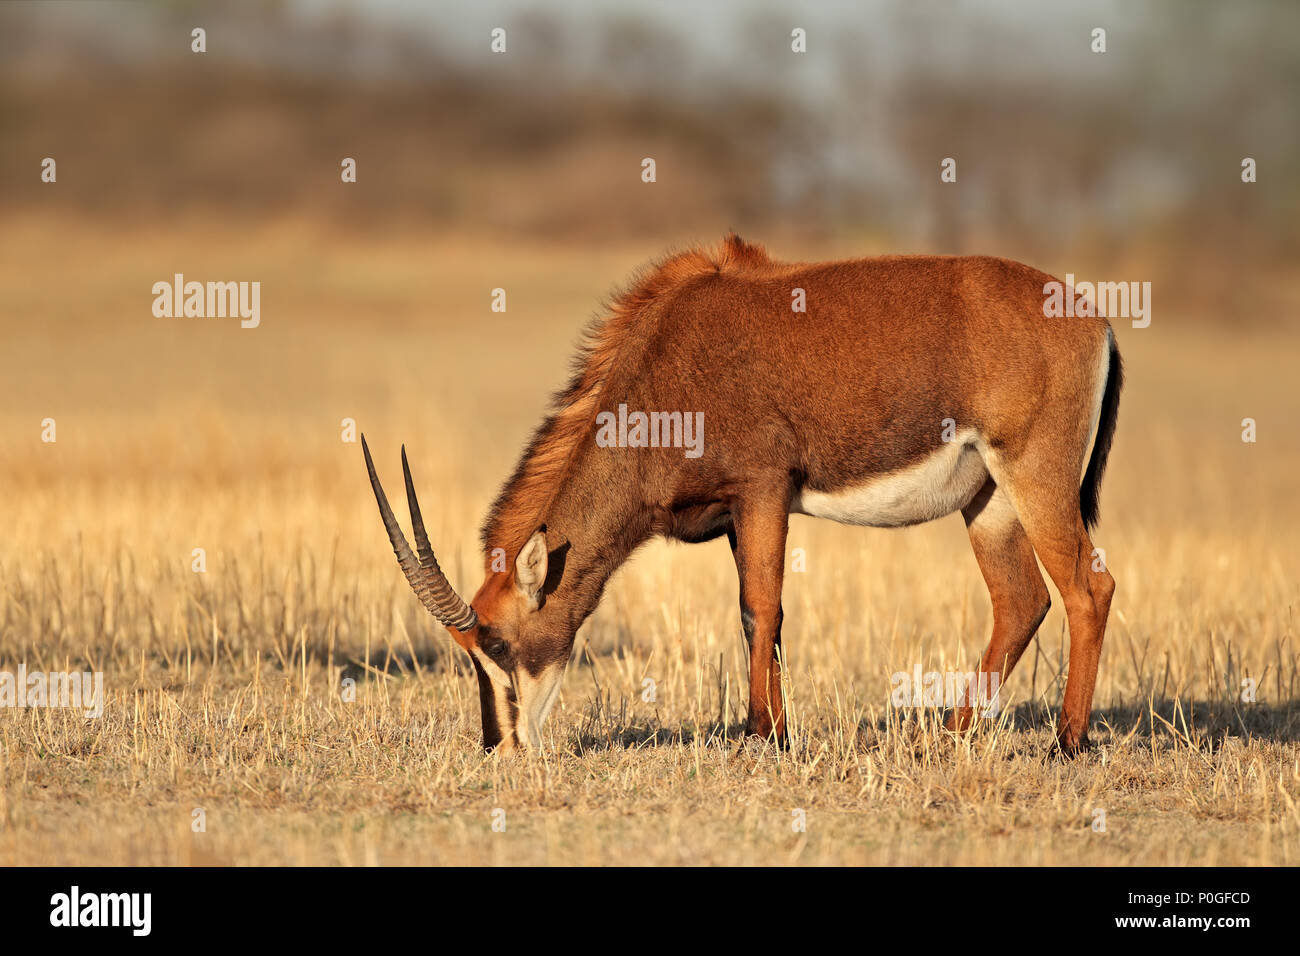 Female sable antelope (Hippotragus niger) grazing, South Africa Stock Photo